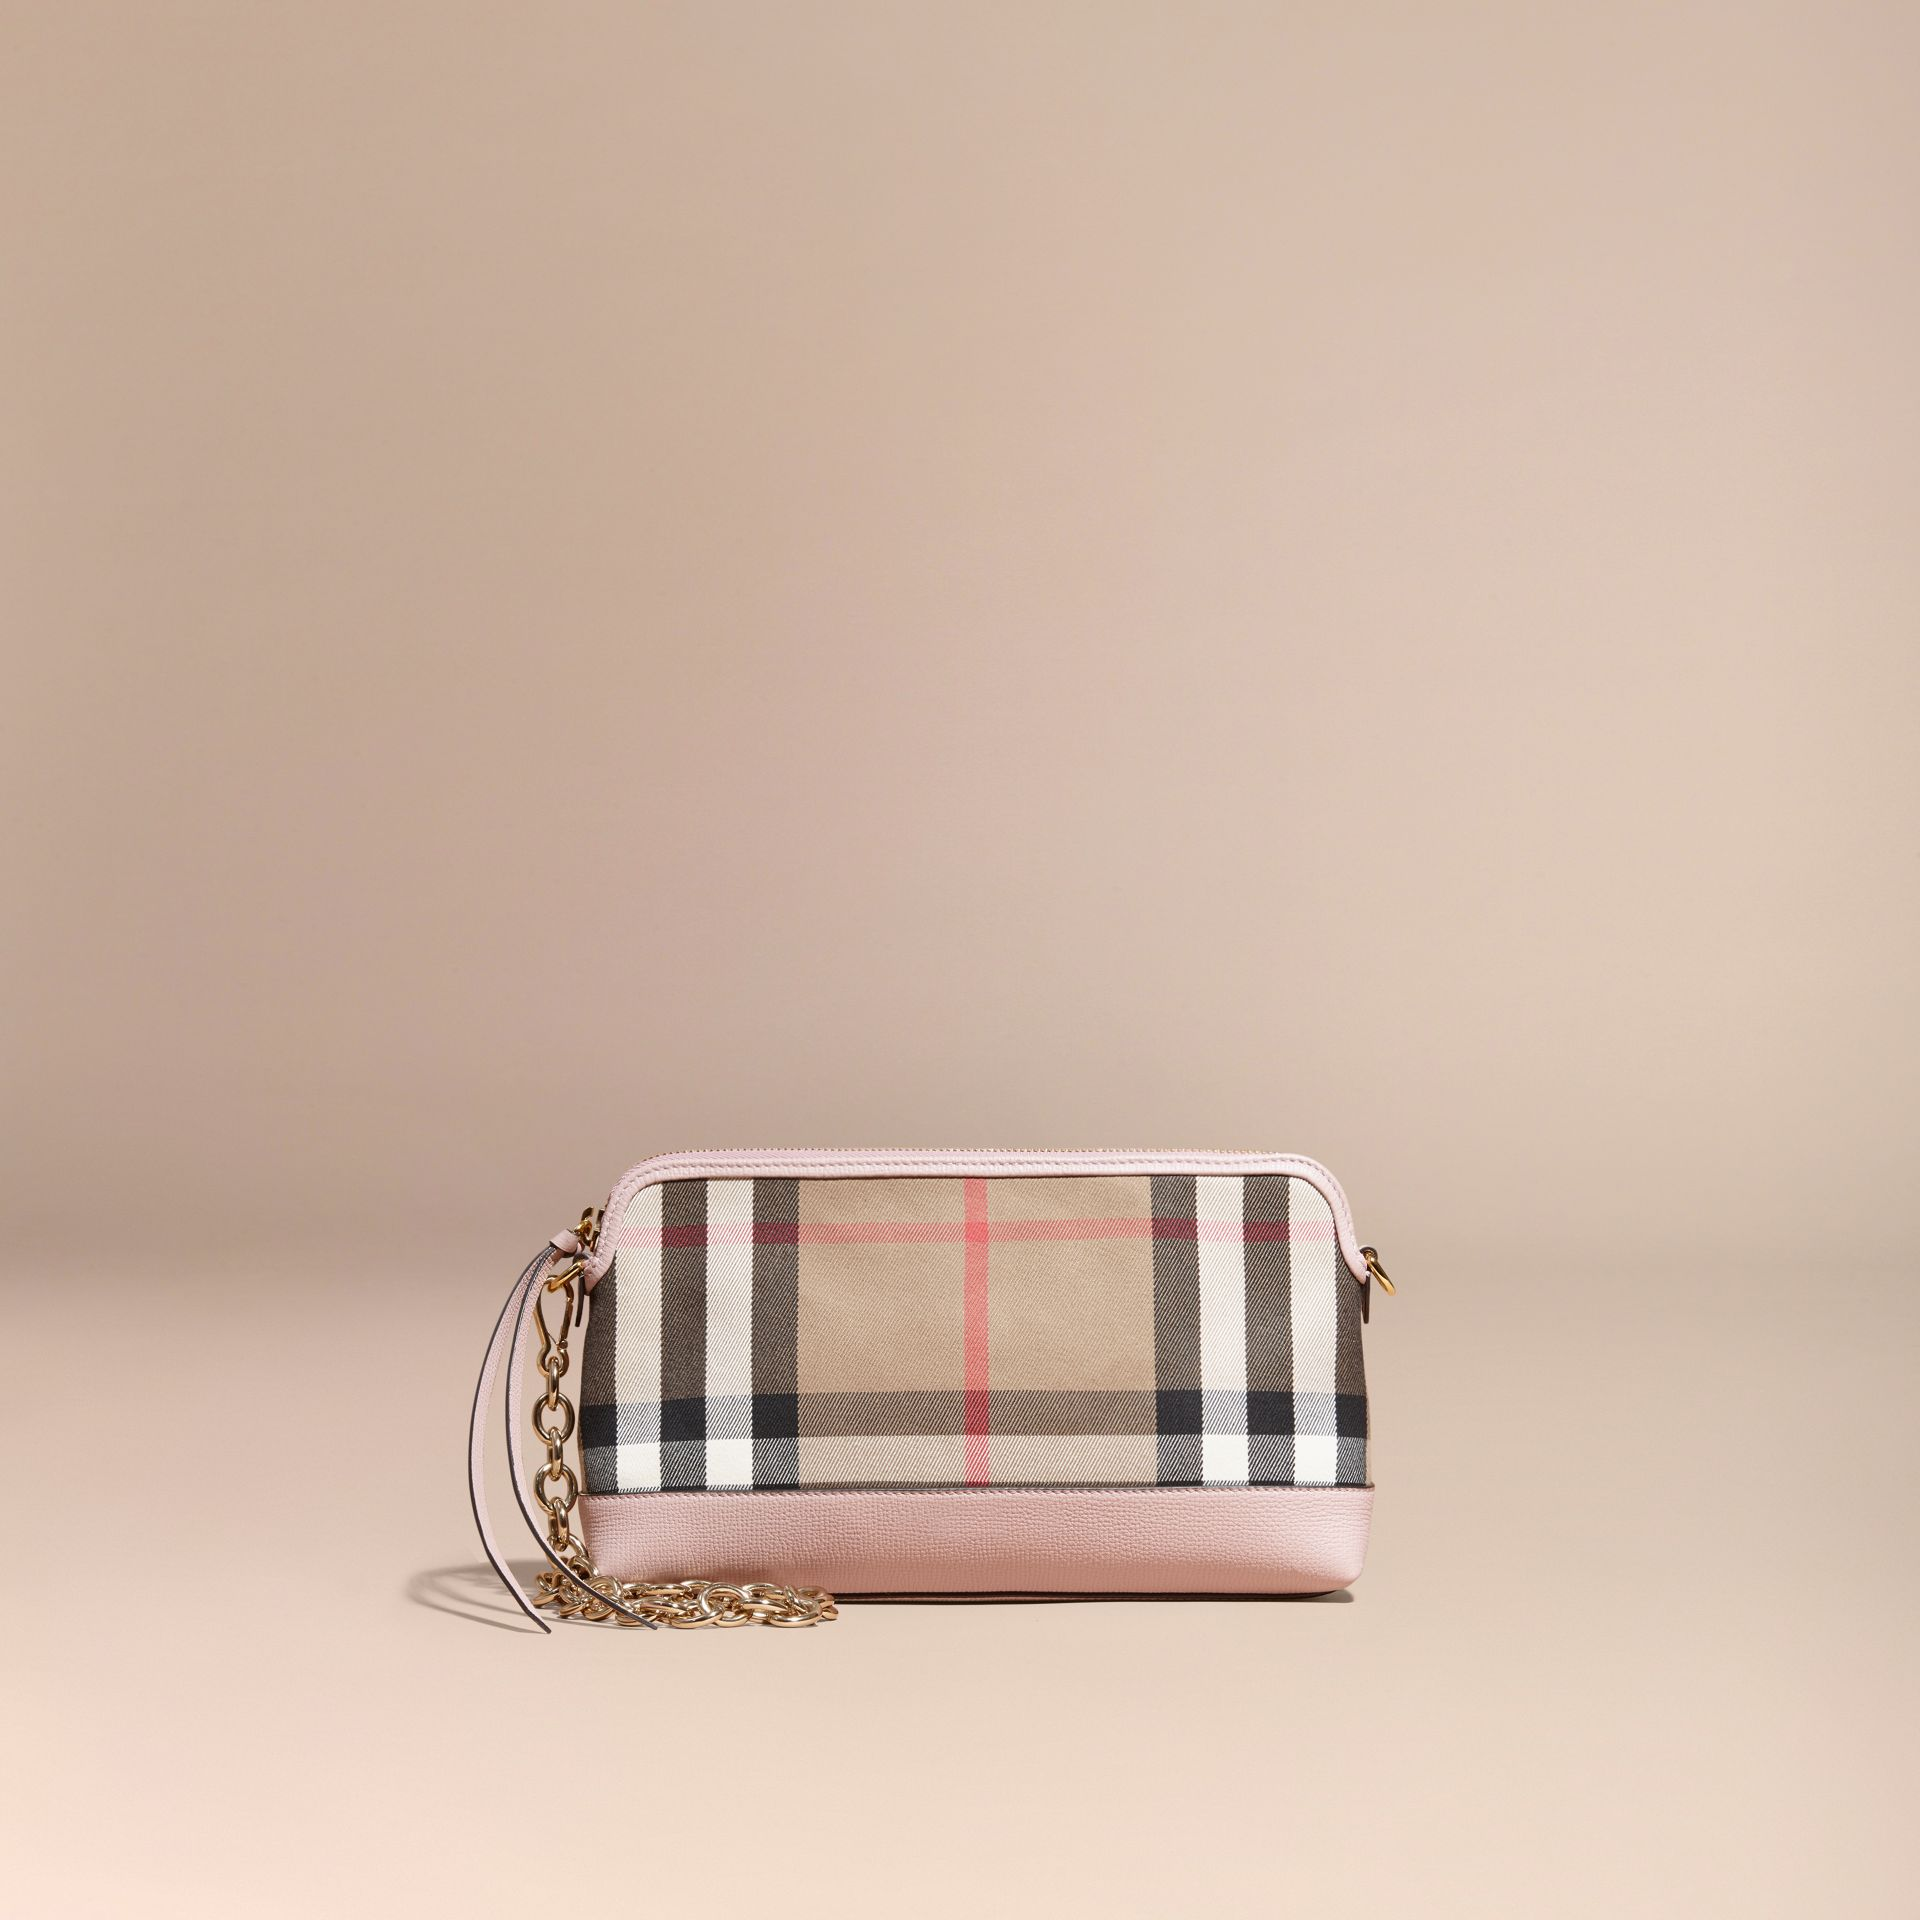 House Check and Leather Clutch Bag in Pale Orchid - Women | Burberry Australia - gallery image 9